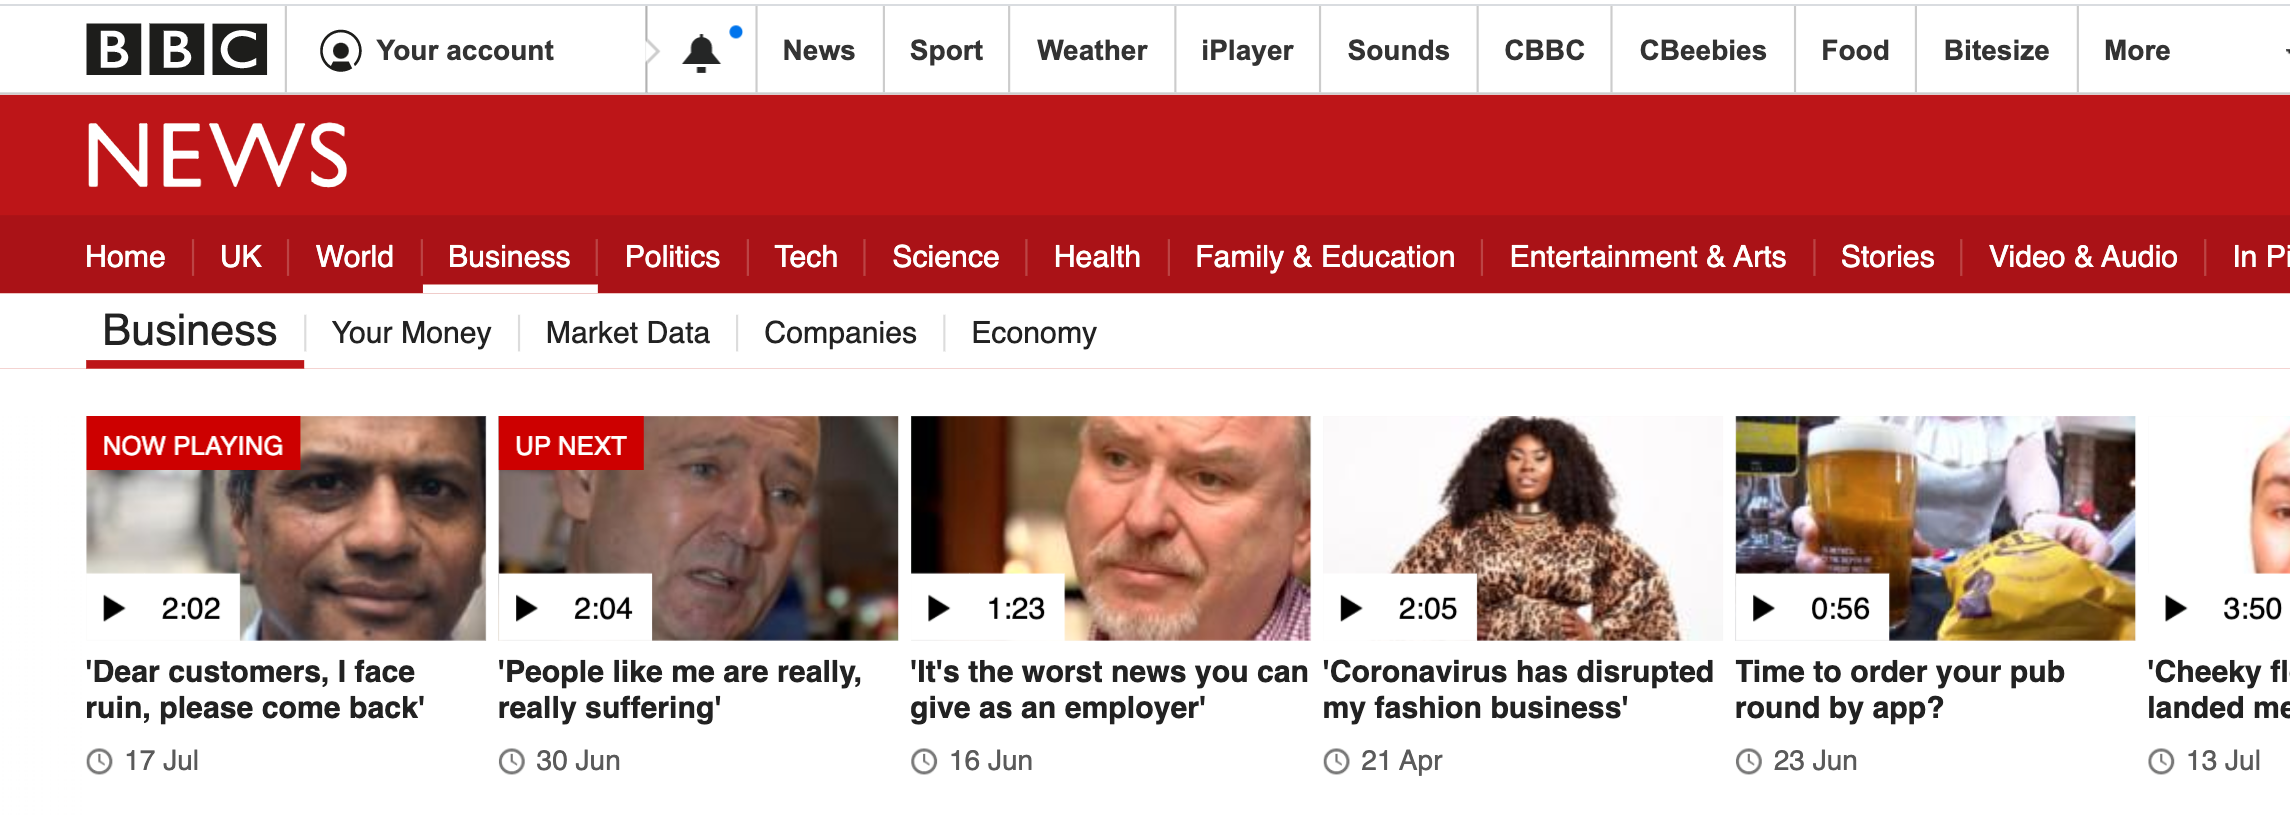 Above: Rumit's plea was one of the top video stories on the BBC News site today.